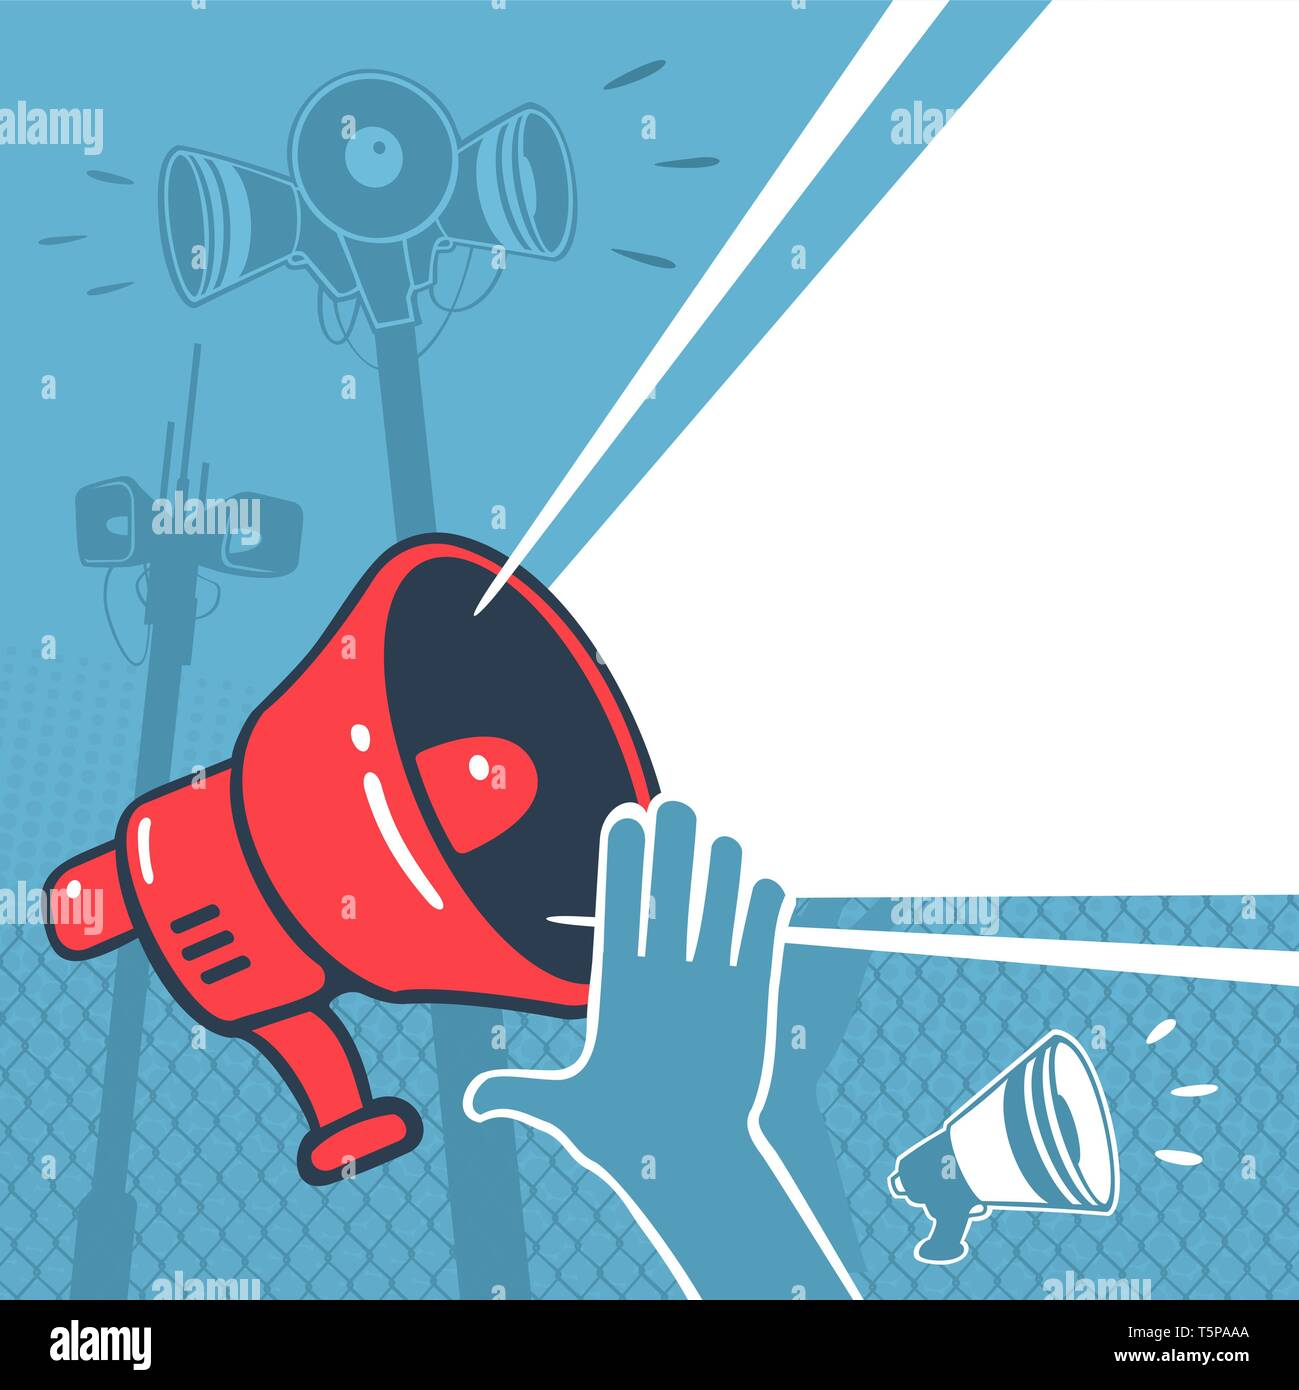 Vector Illustration Megaphone Element Propaganda - Stock Image